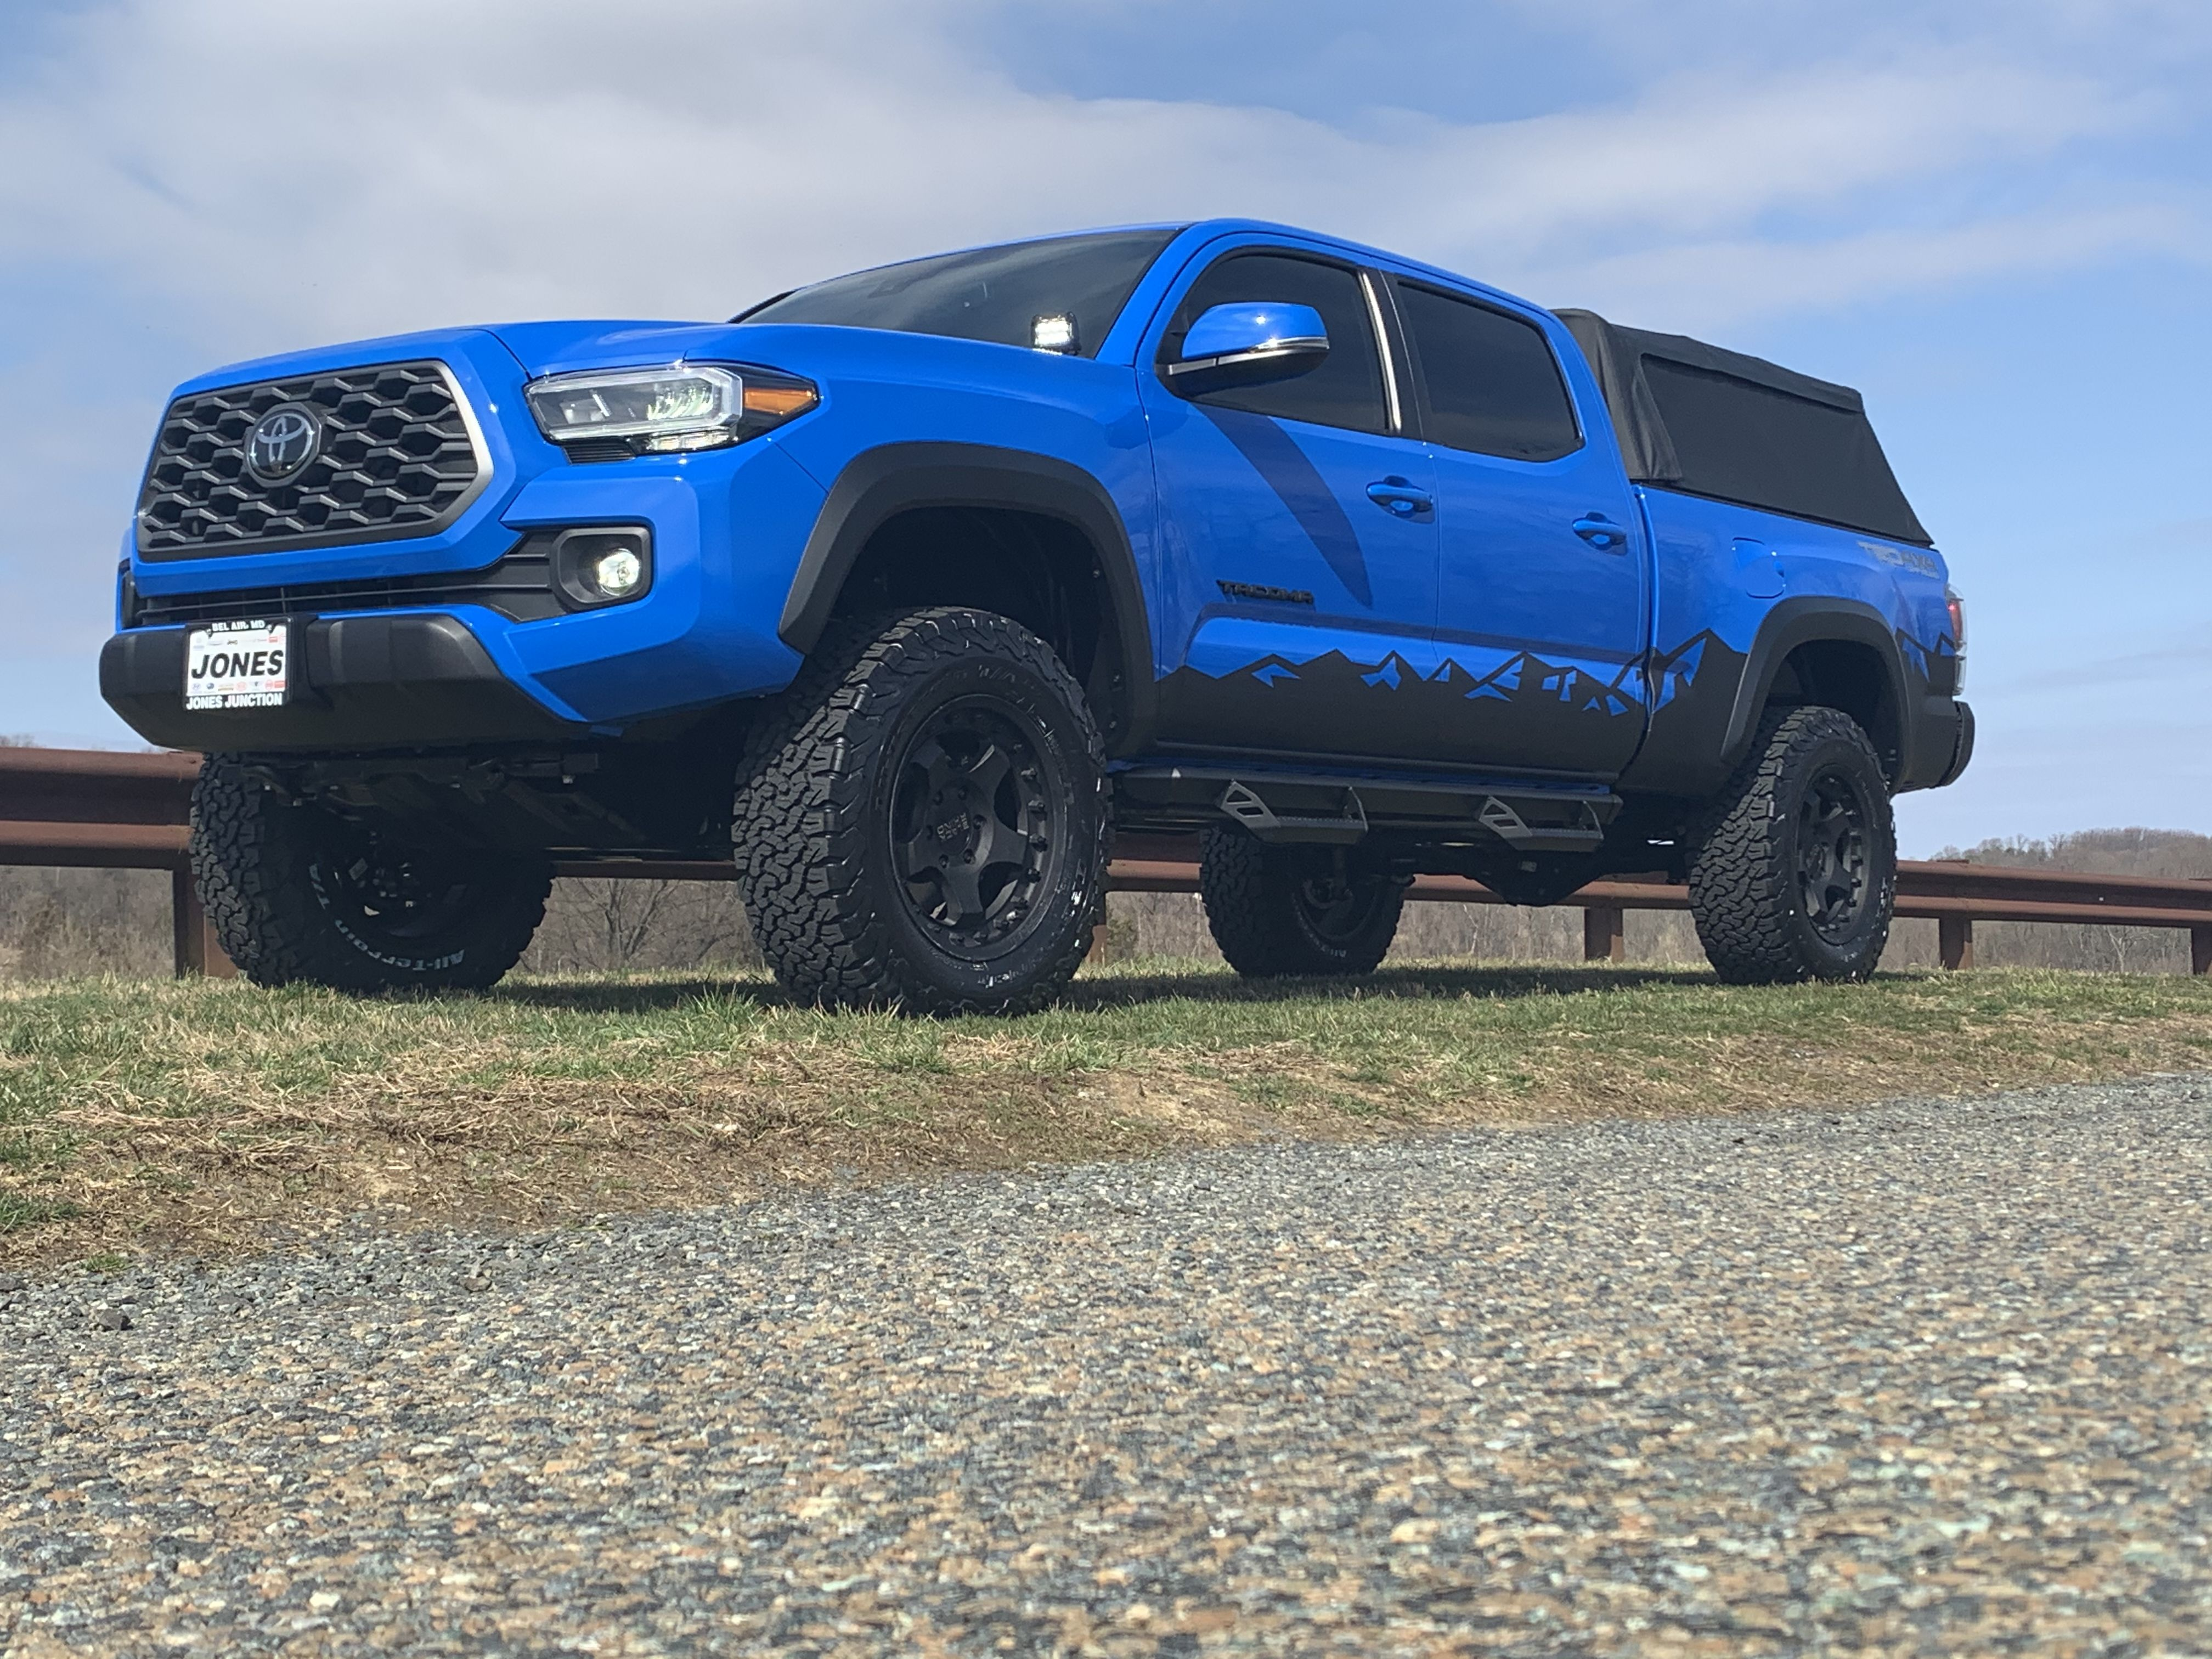 Mountain Tacoma In 2021 Toyota Jdm Cars Jdm